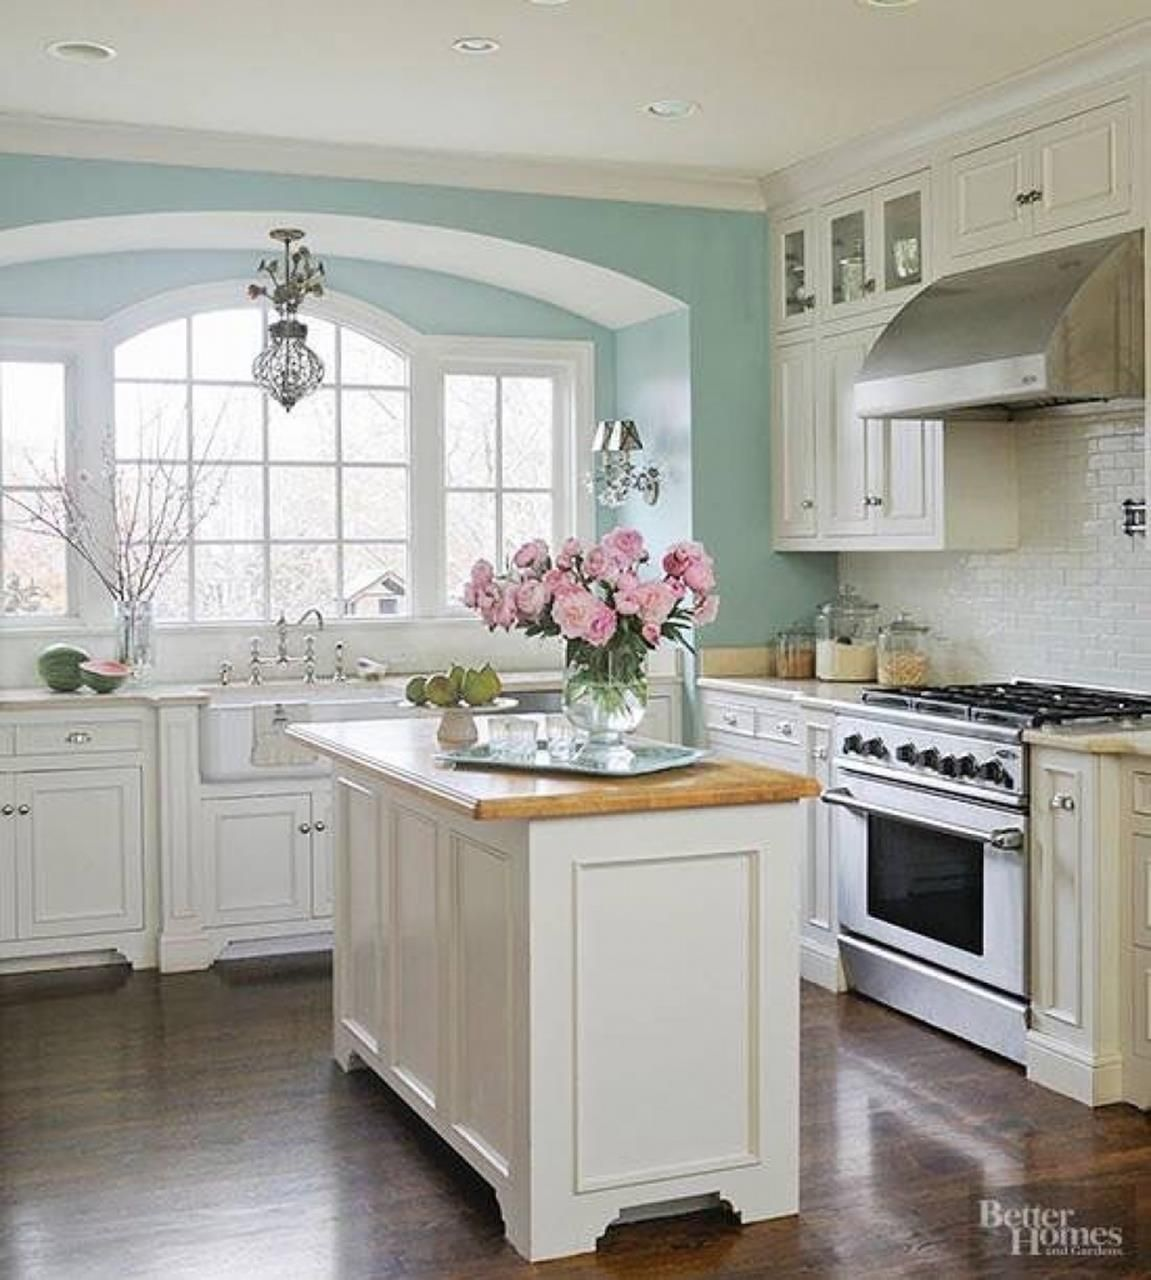 Vintage Shabby Chic Kitchen Cabinets 48 Craft And Home Ideas In 2020 Popular Kitchen Paint Colors Shabby Chic Kitchen Cabinets Shabby Chic Kitchen